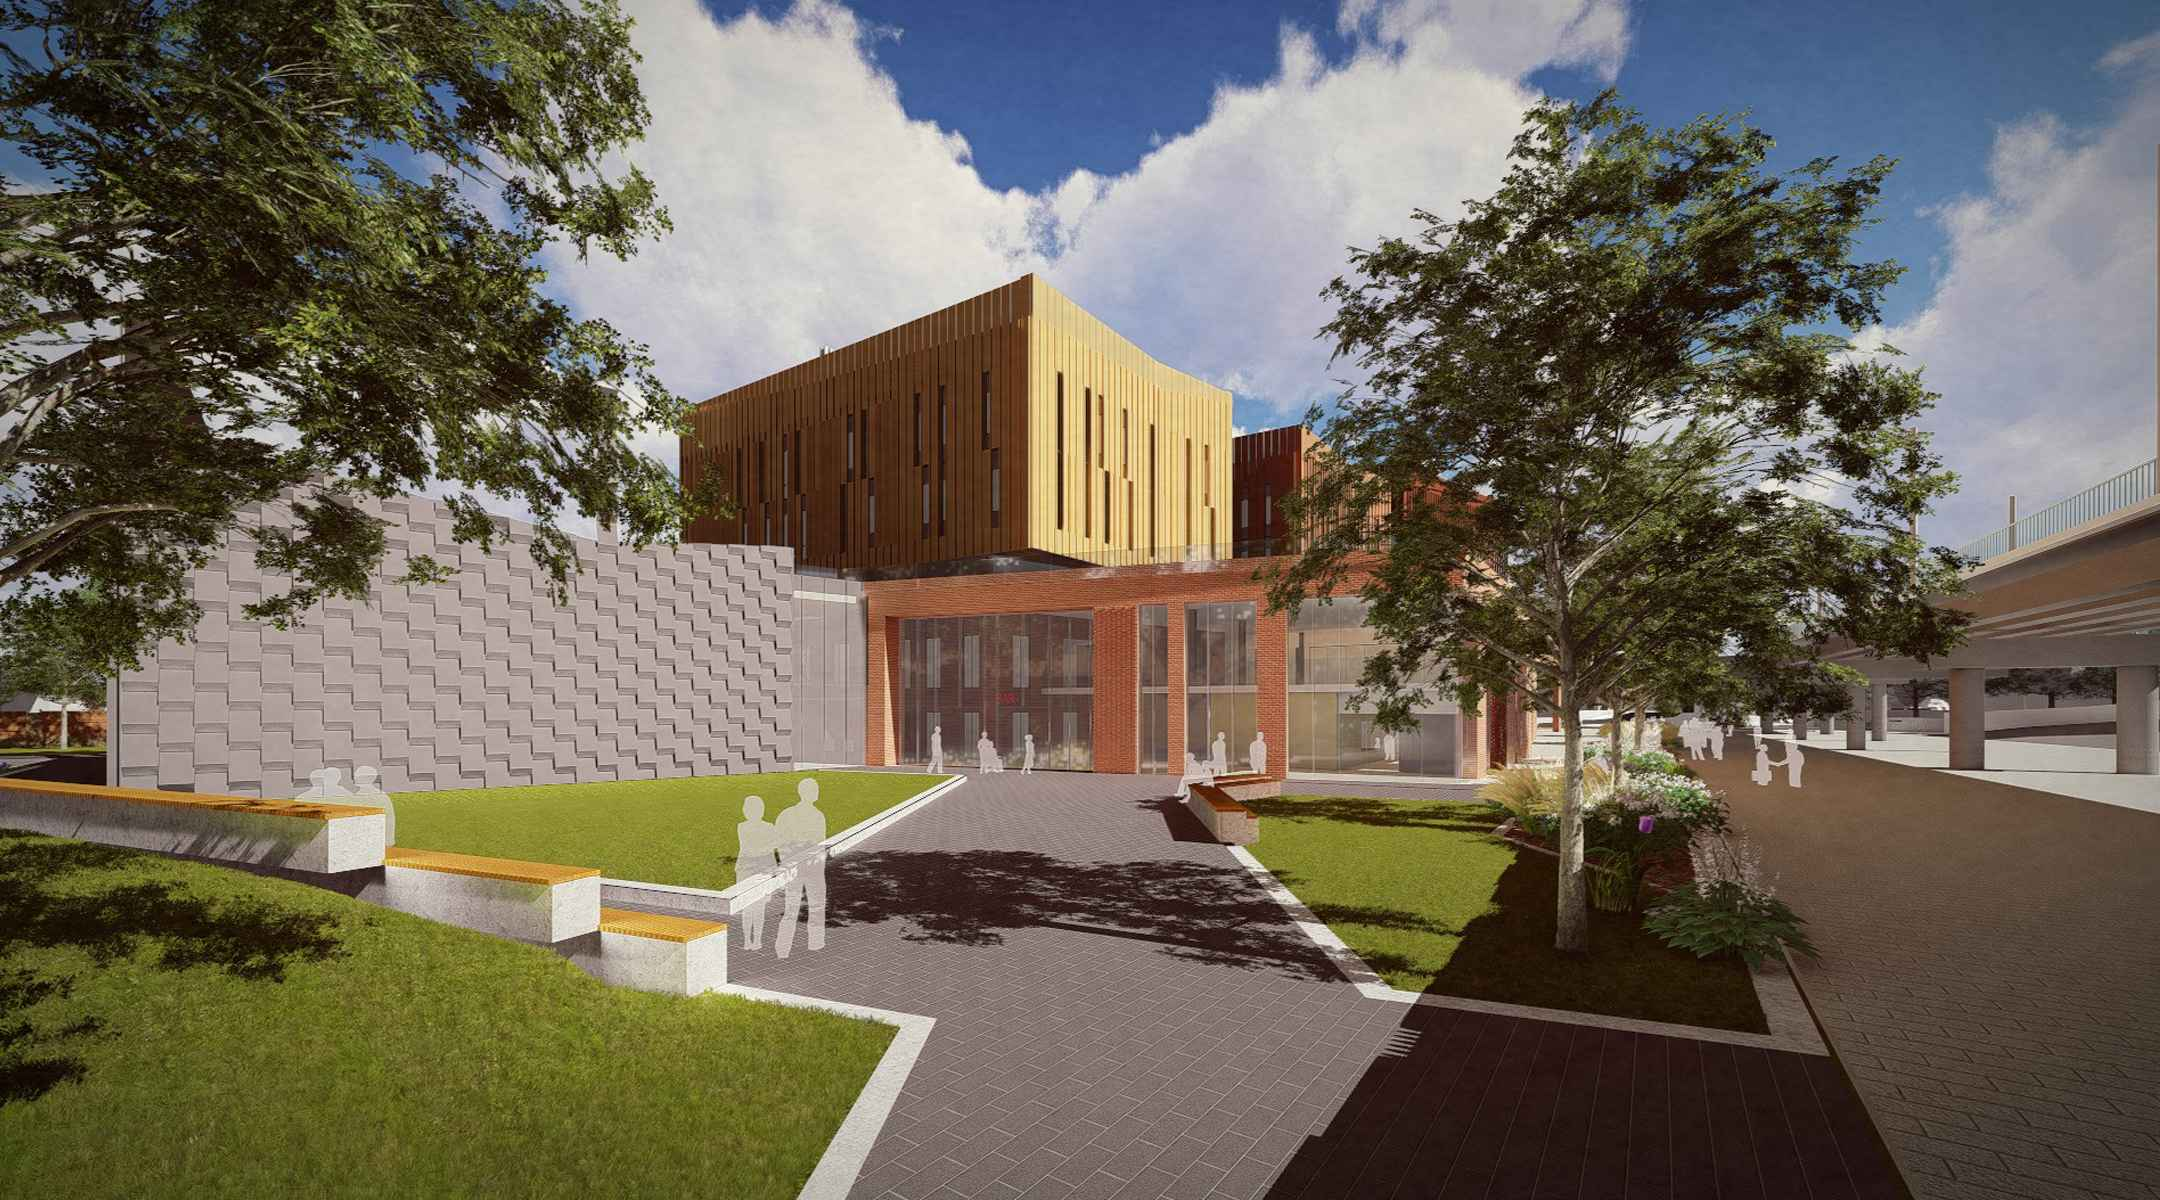 Meeting BIM Level 2 Requirements in Landscape Architecture